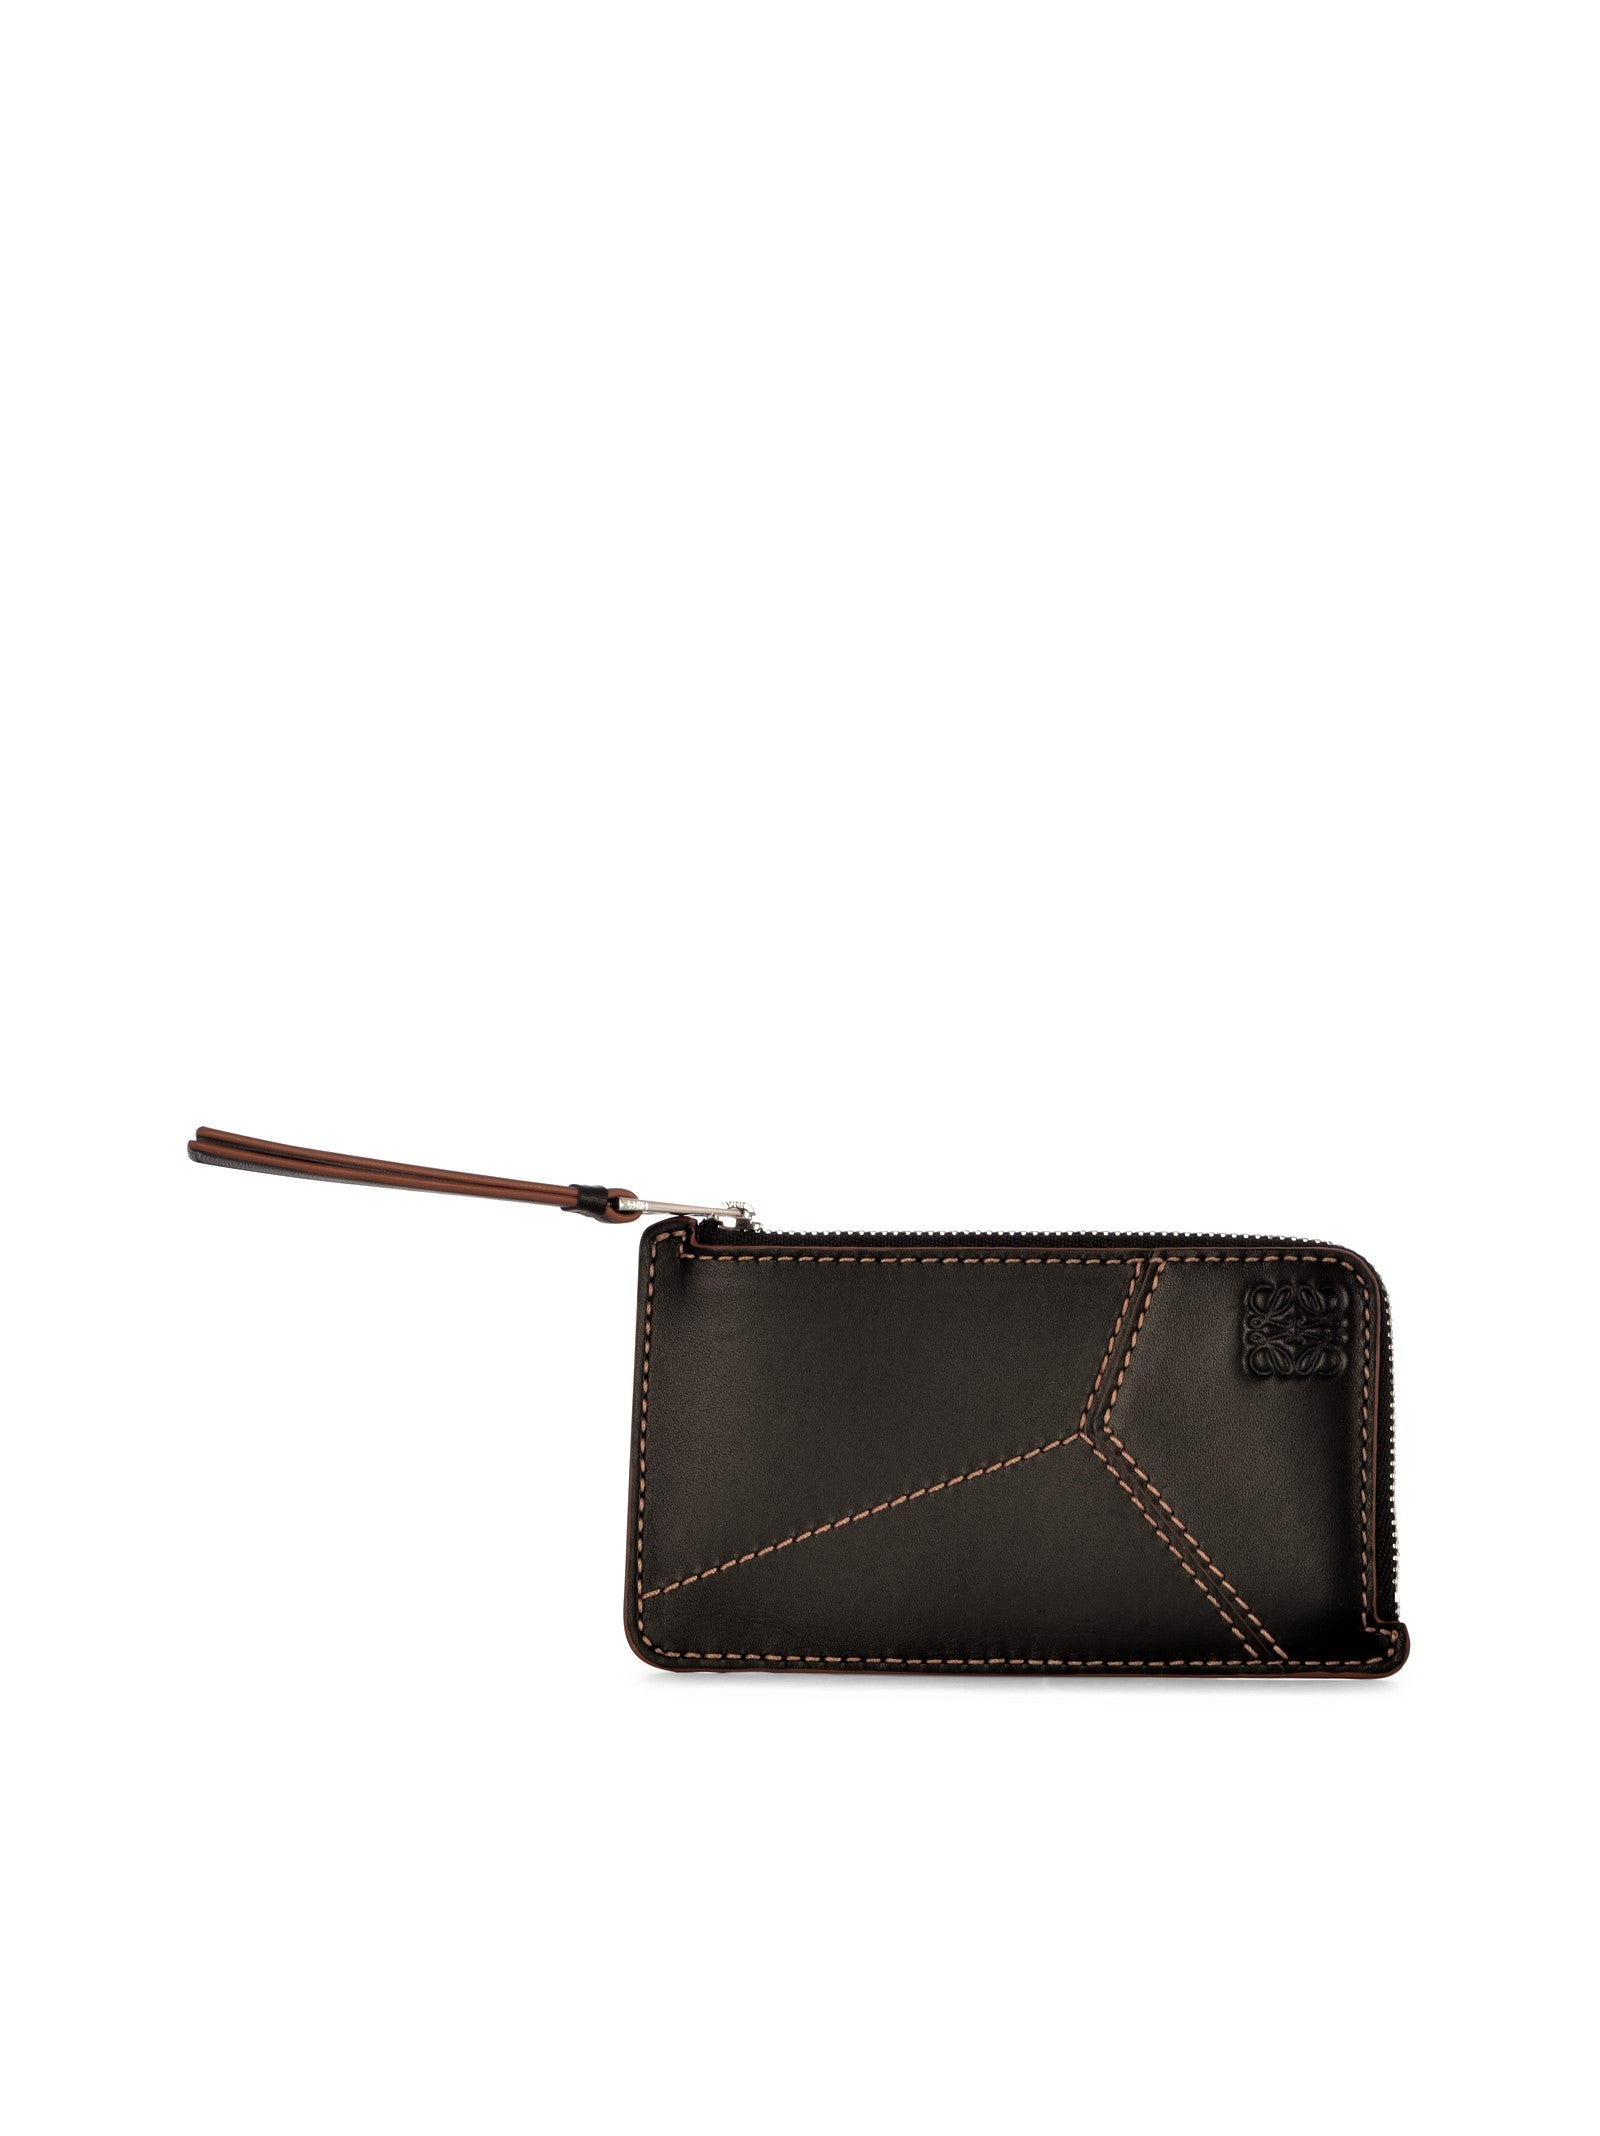 Puzzle coin cardholder in classic calfskin